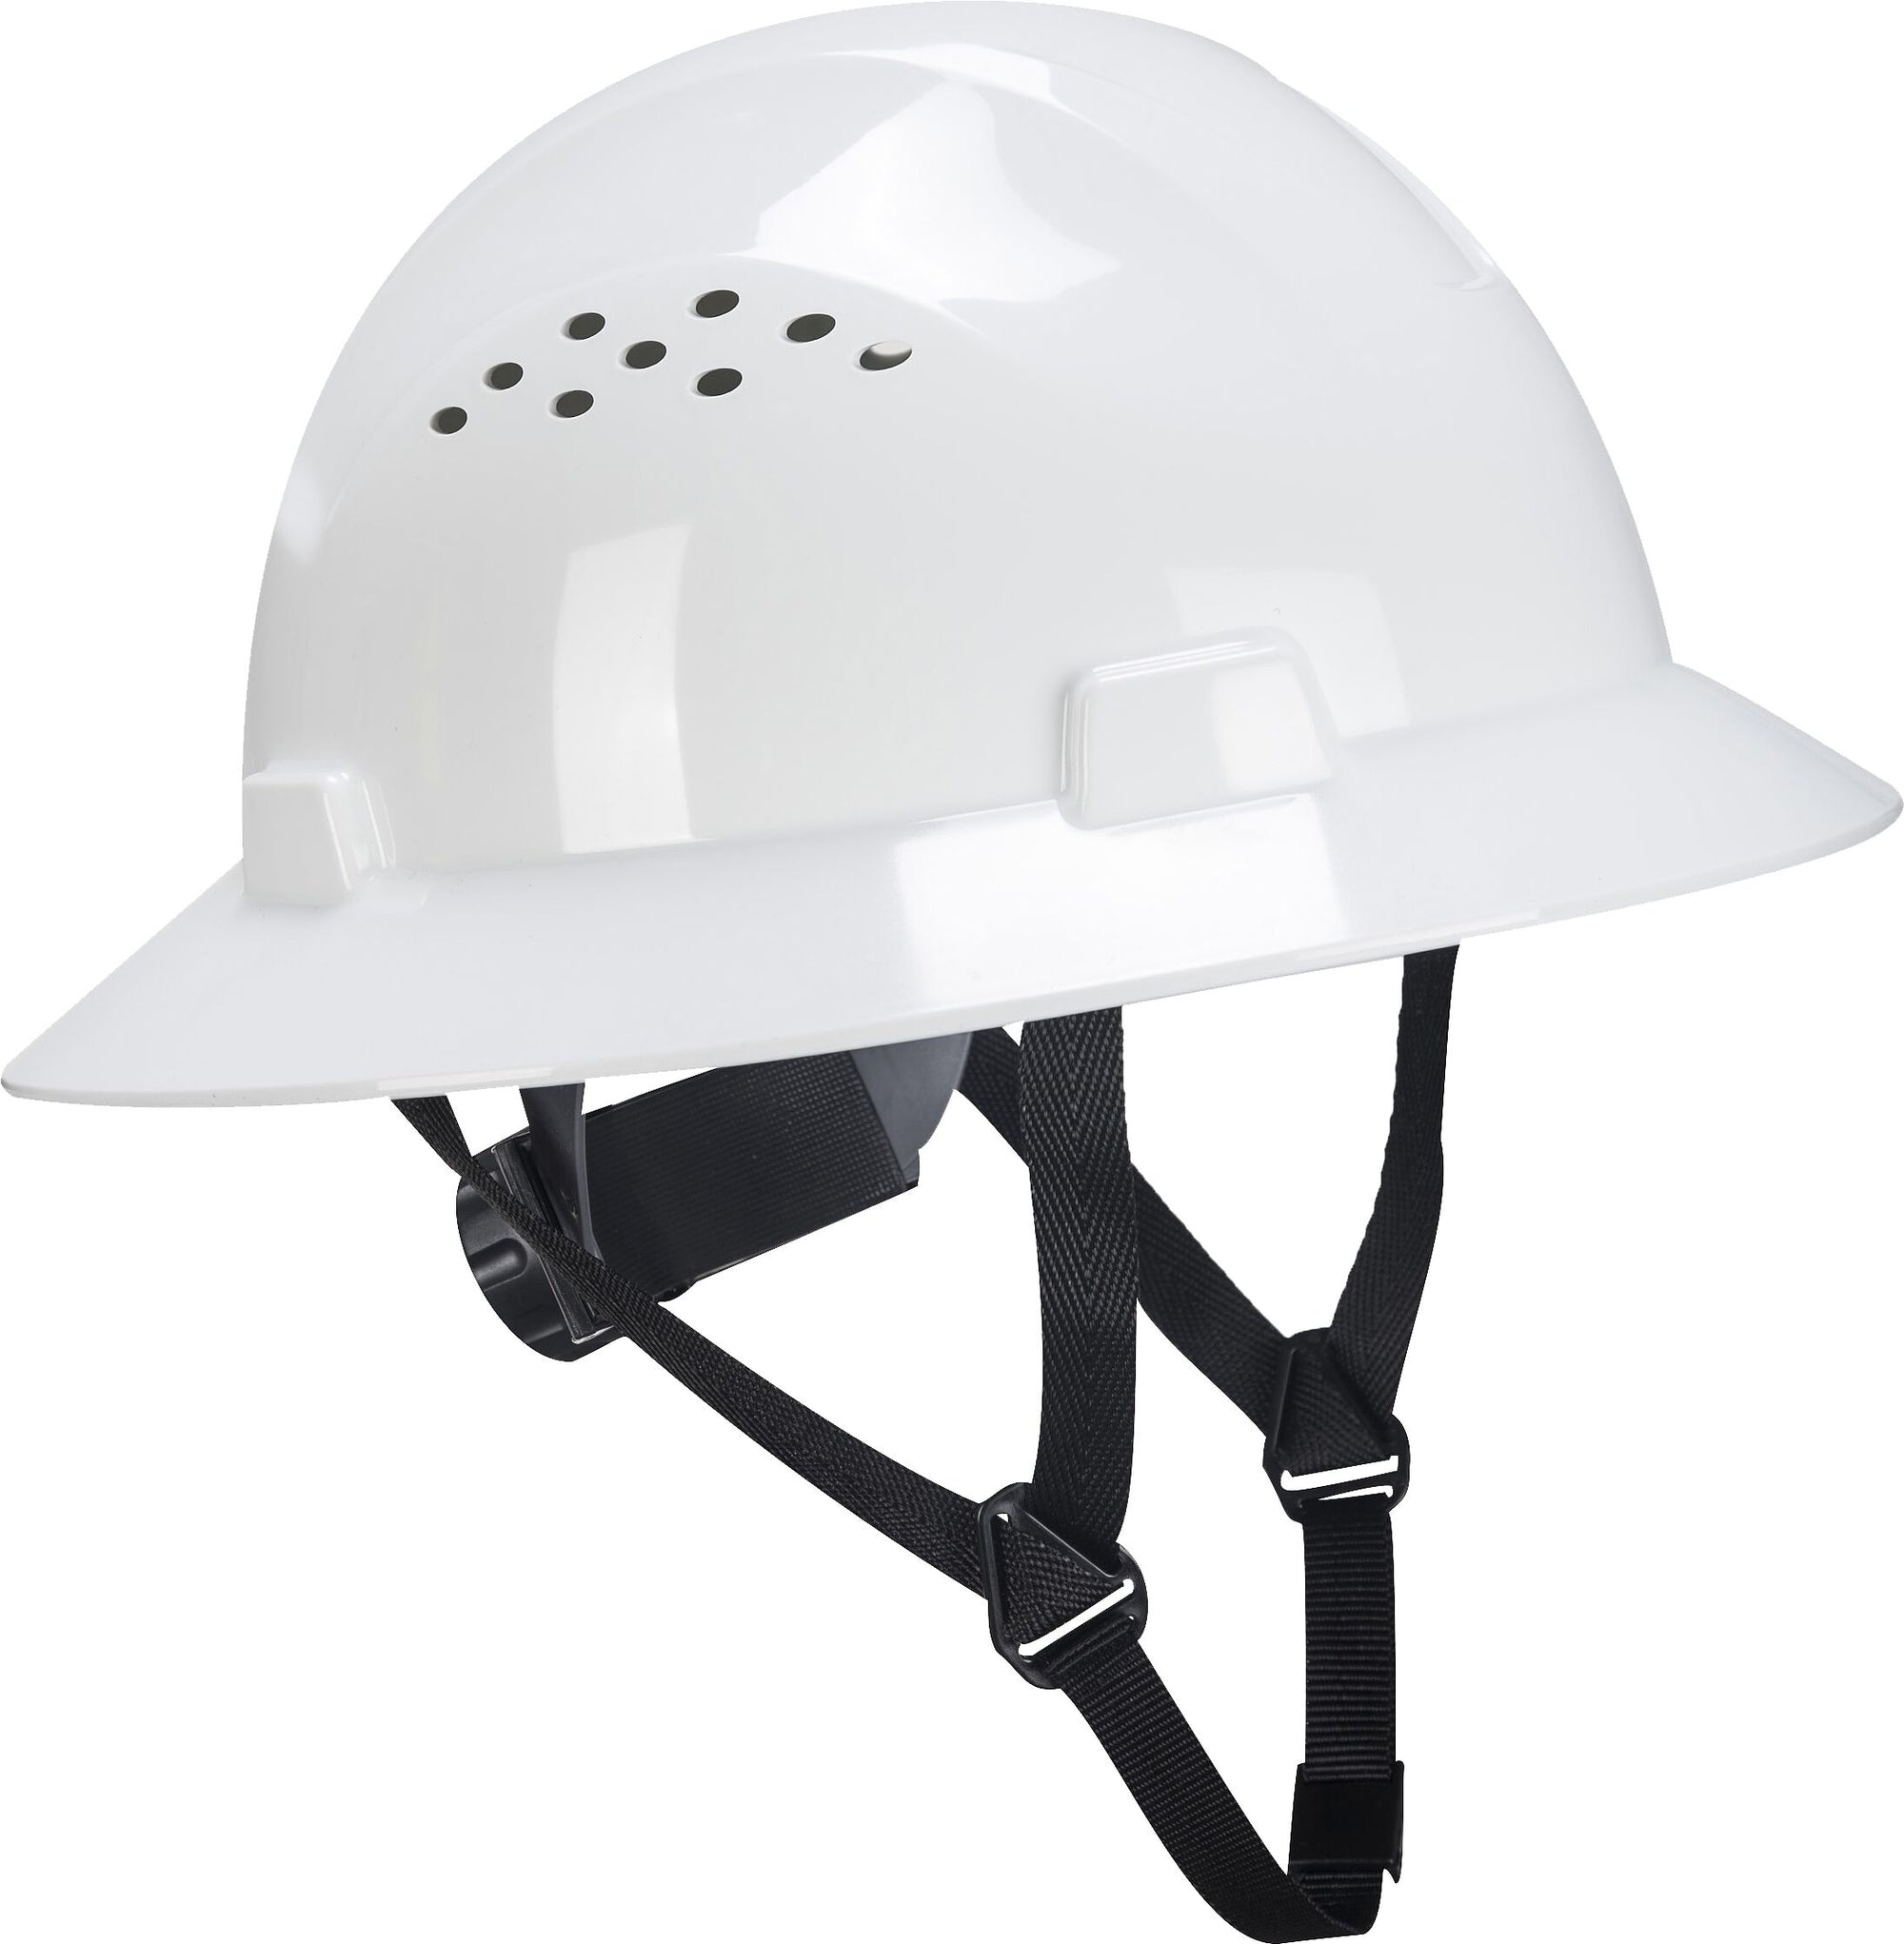 Brite Safety Full Brim Hard Hat - 4 Points Textile Harness Wheel Ratchet Vented Hard Hats Construction Helmet